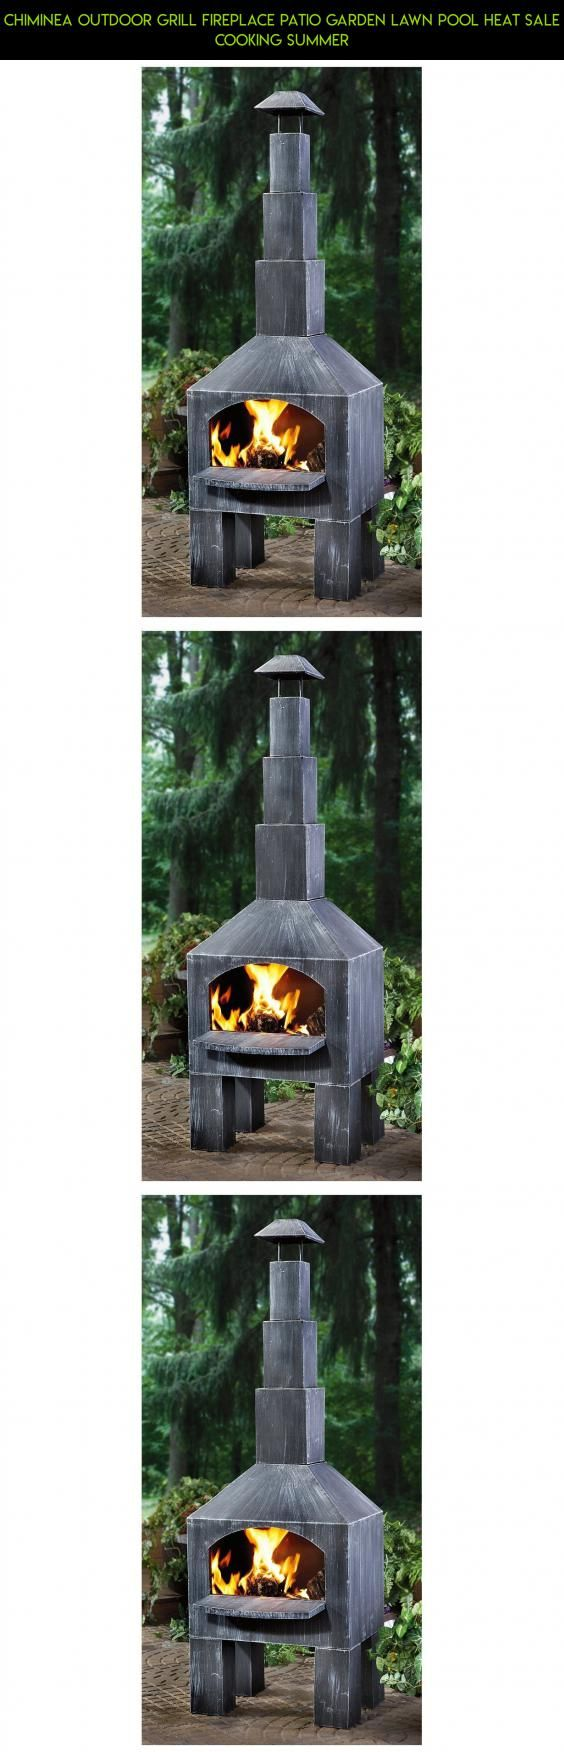 Chiminea Outdoor Grill Fireplace Patio Garden Lawn Pool Heat Sale Cooking Summer #outdoor #kit #products #cooking #plans #chiminea #drone #racing #gadgets #shopping #camera #parts #tech #fpv #technology